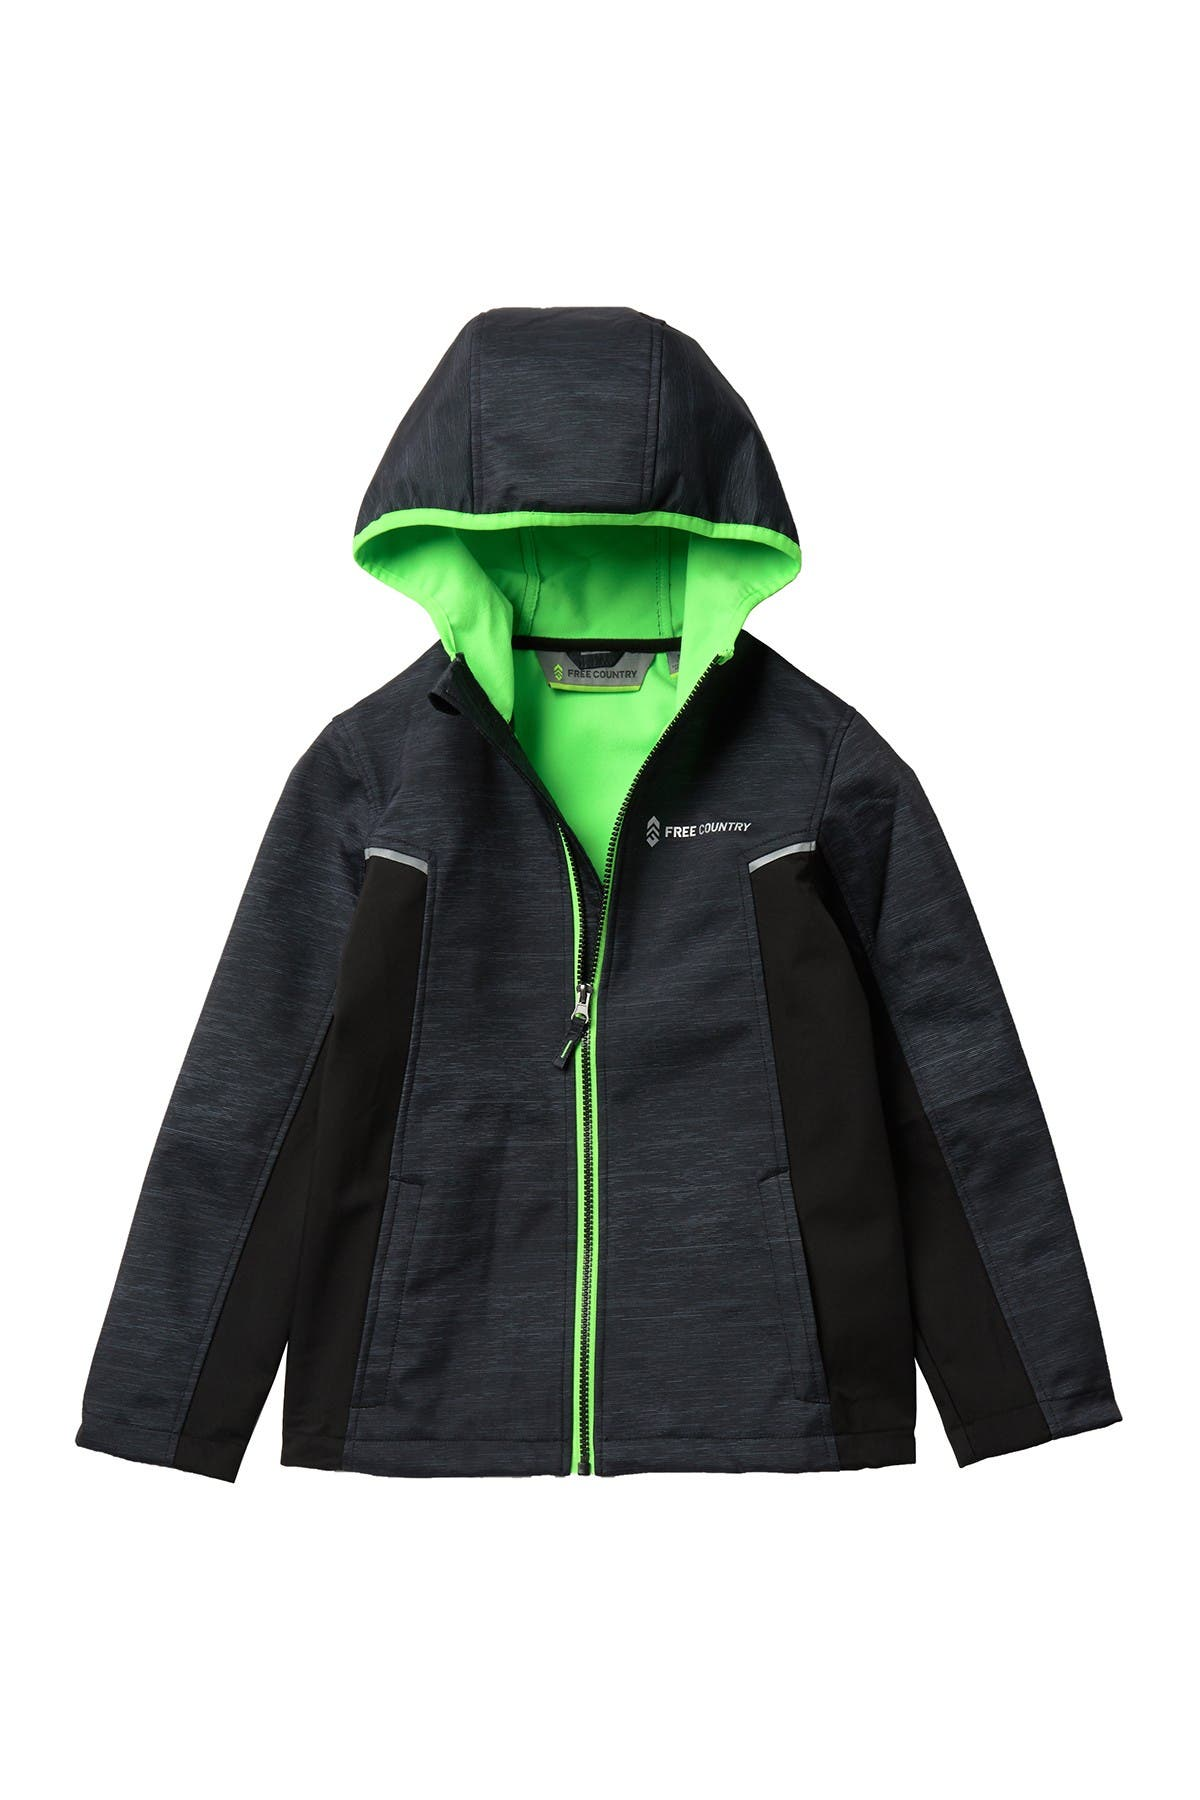 Image of Free Country Softshell Jacket